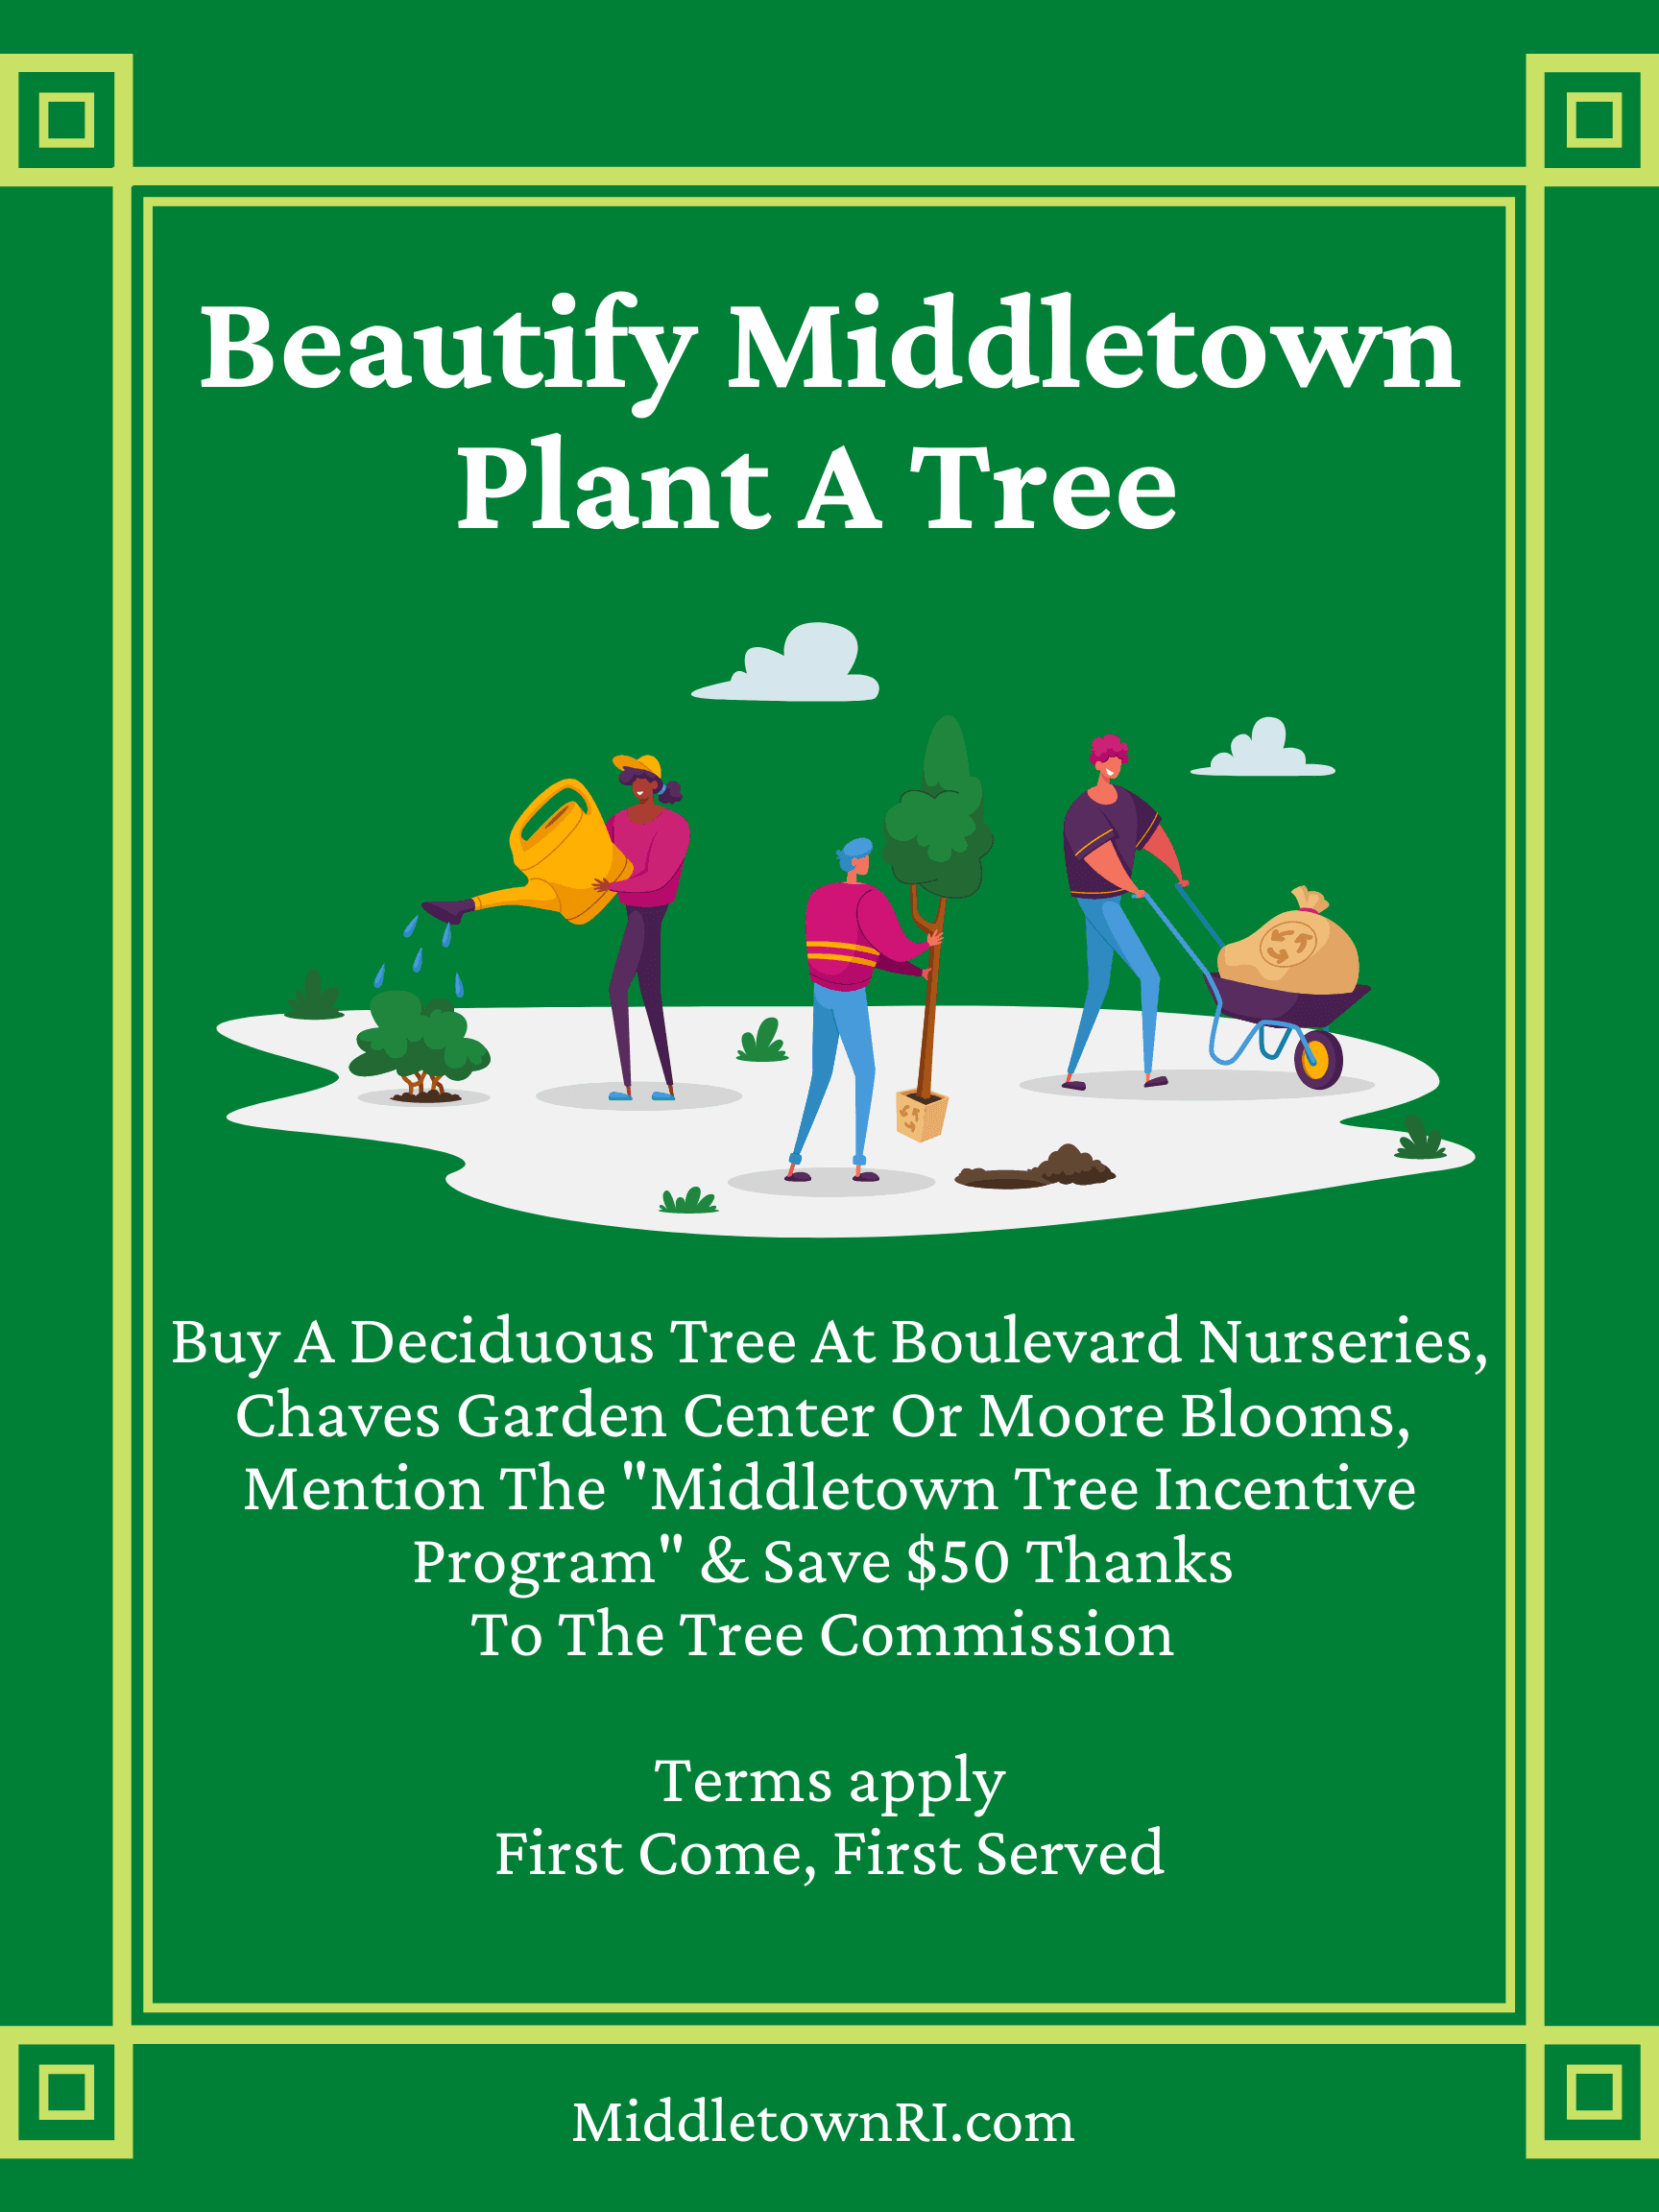 Beautify Middletown Plant A Tree-2